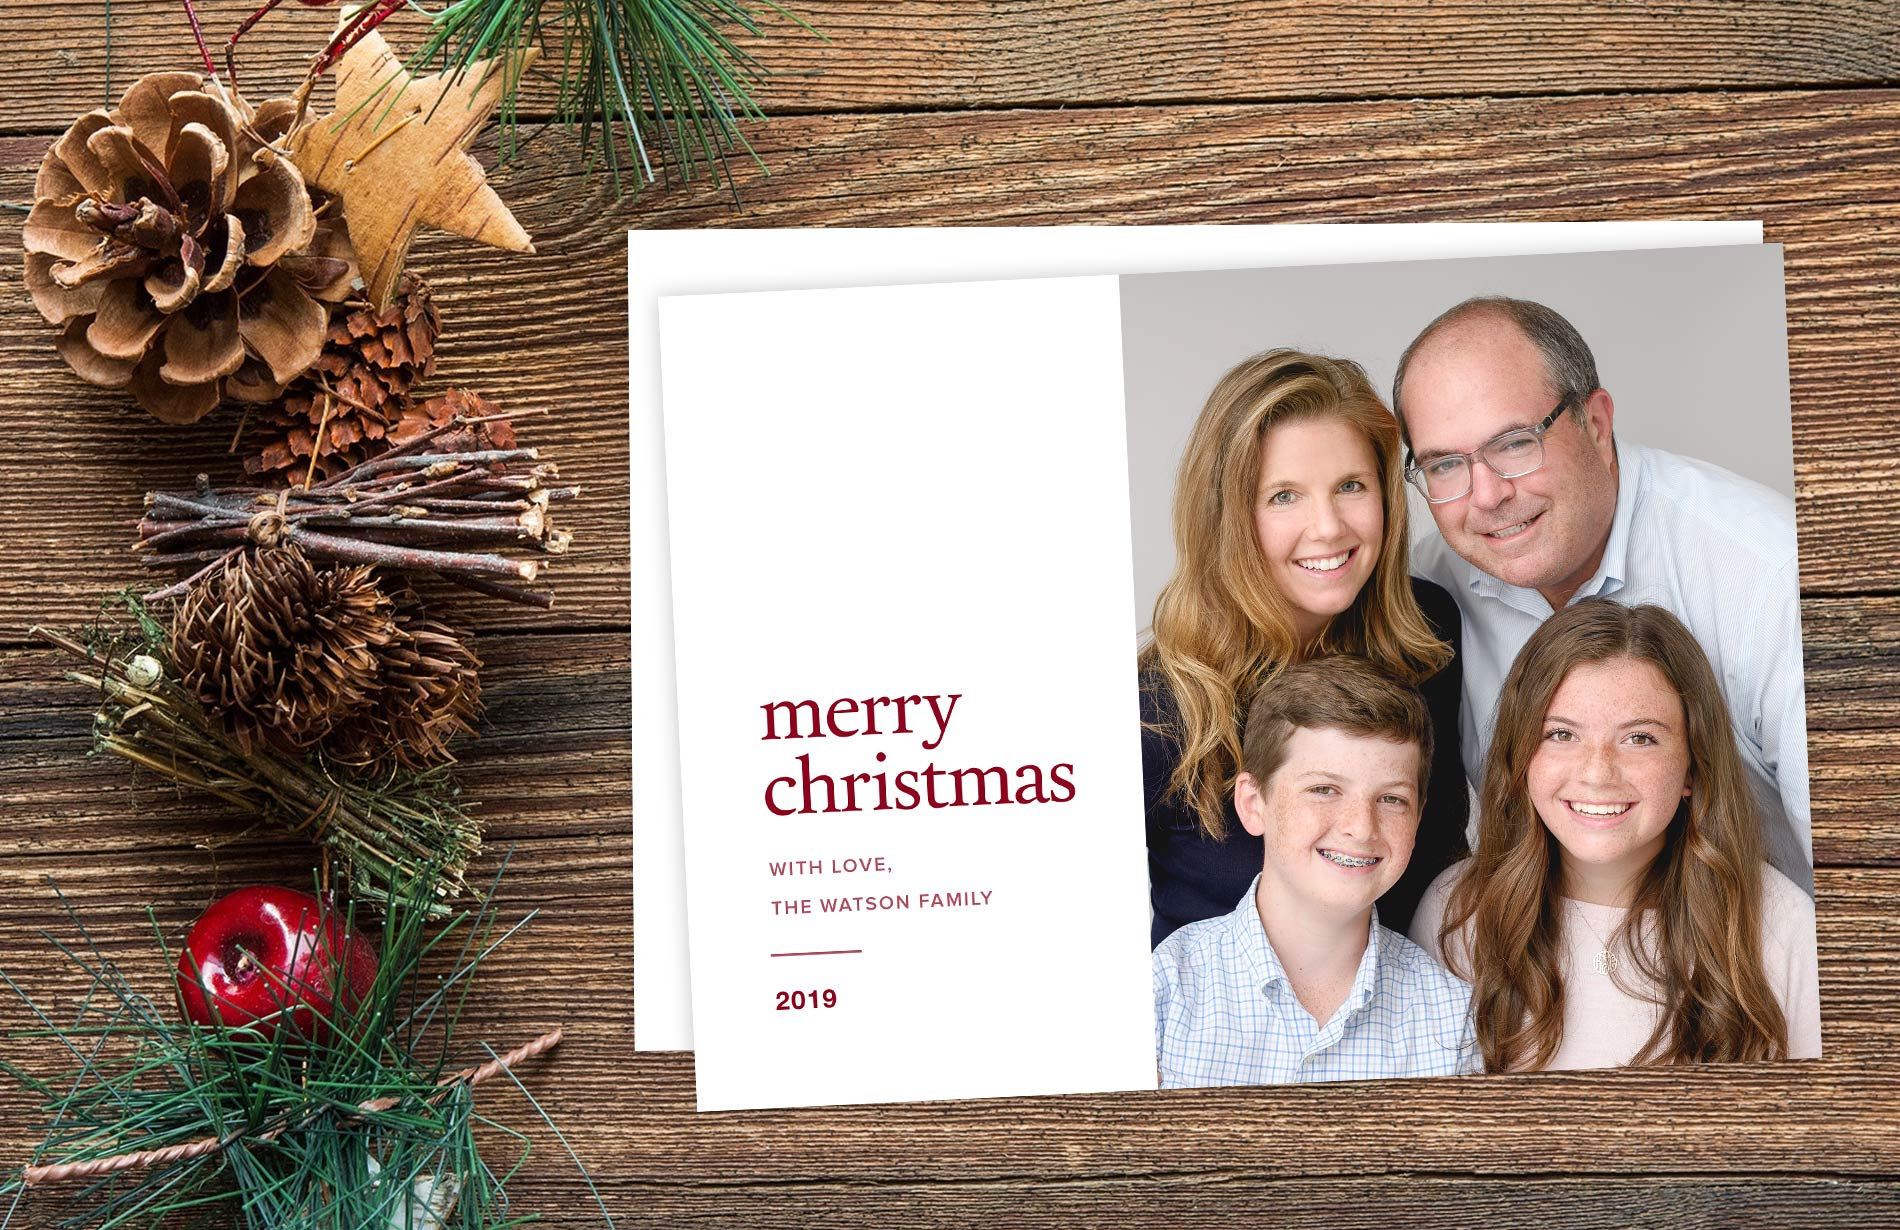 nlalor-photography-holiday-card-sessions-promo-image-3.jpg